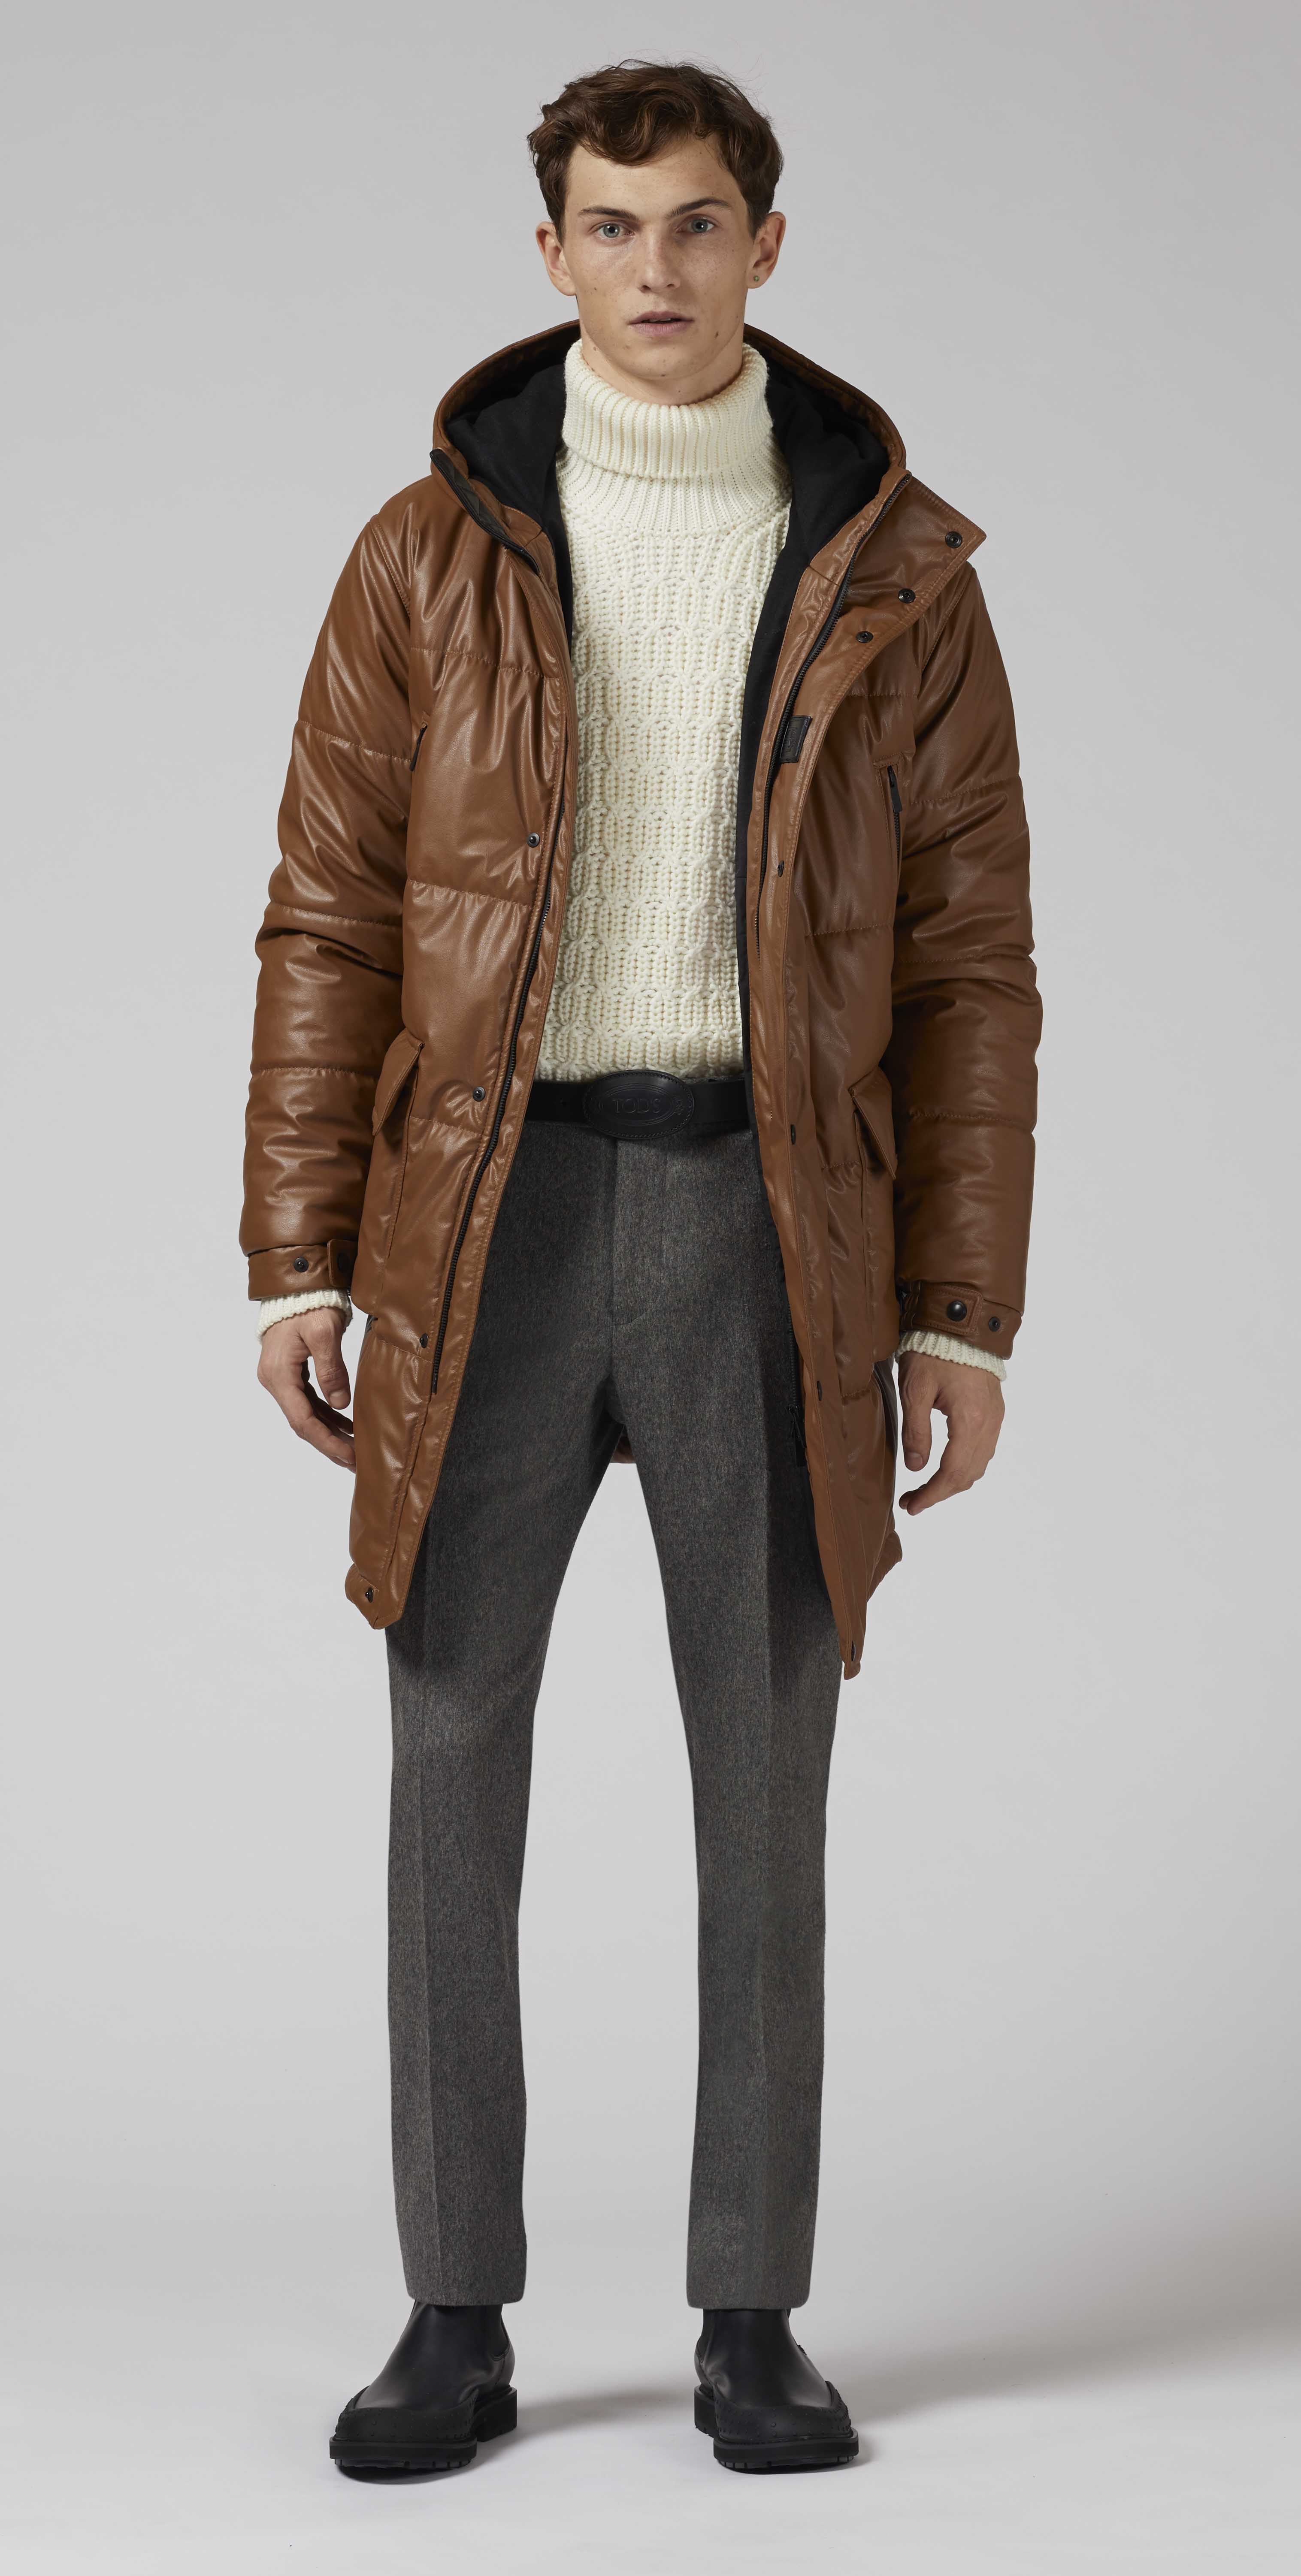 TODS_FW19-20